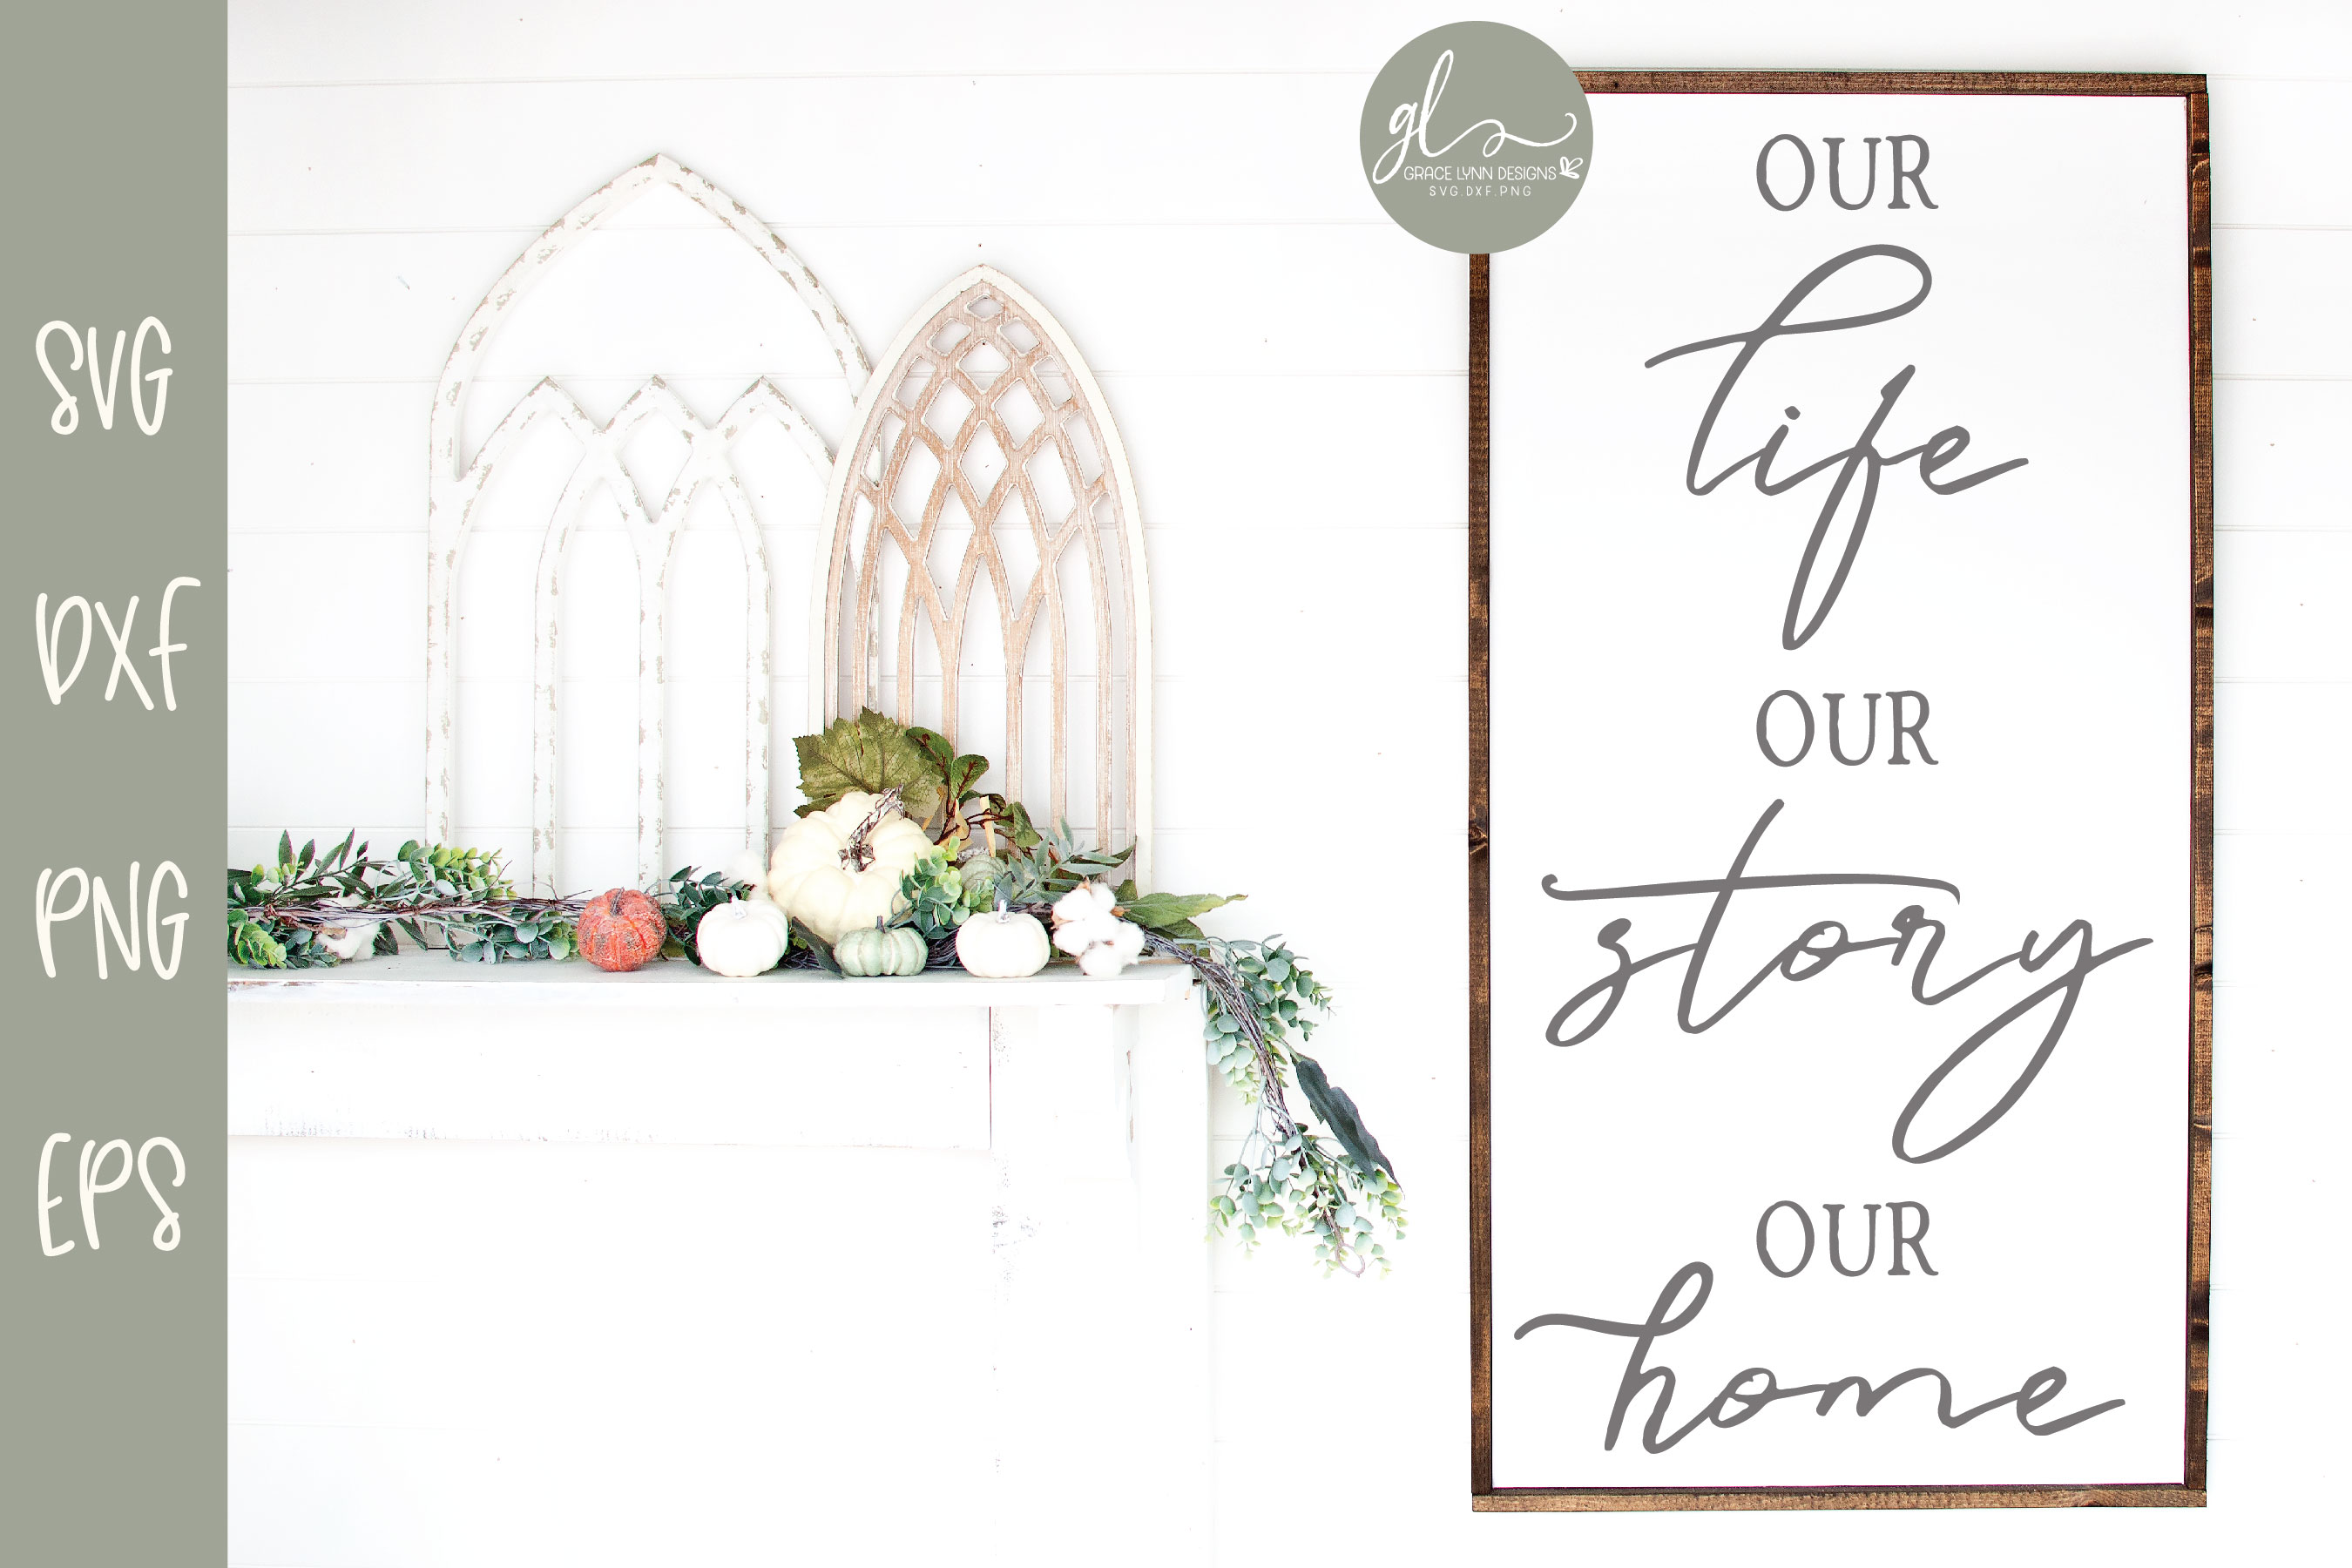 Our Life Our Story Our Home - SVG example image 1